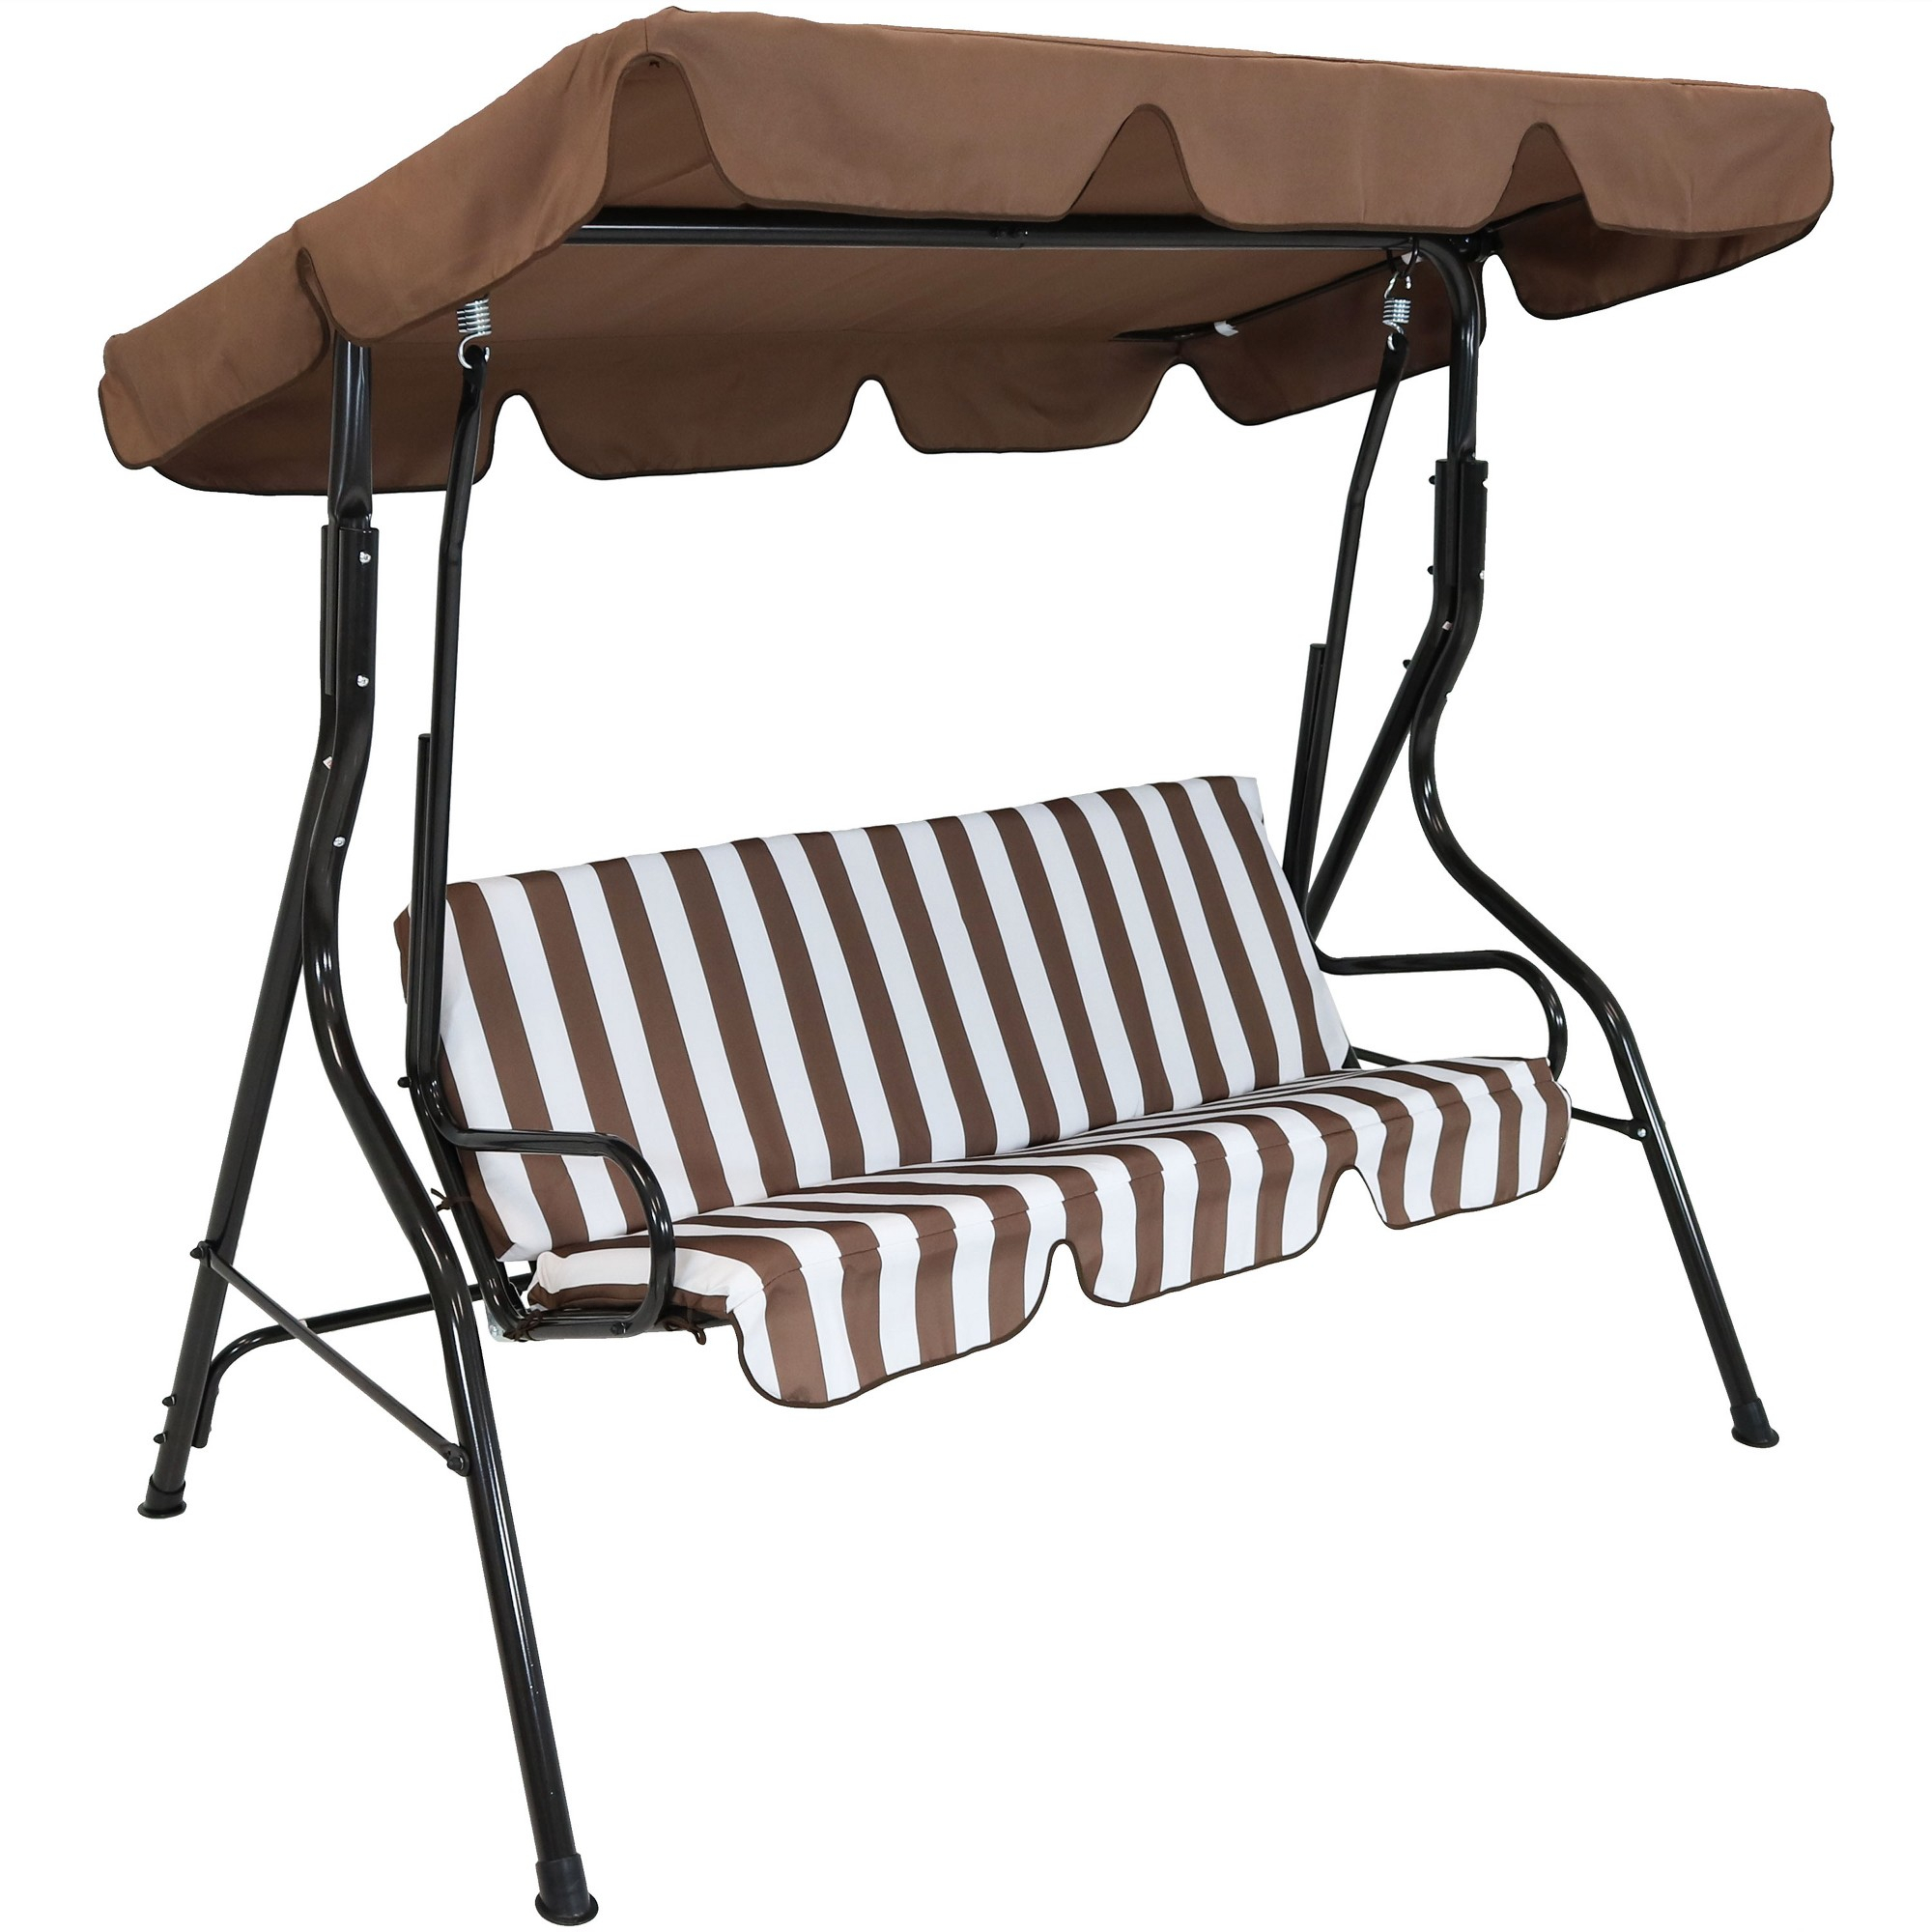 2 Person Steel Frame Porch Swing With Adjustable Canopy Pertaining To 2 Person Black Steel Outdoor Swings (Image 4 of 25)